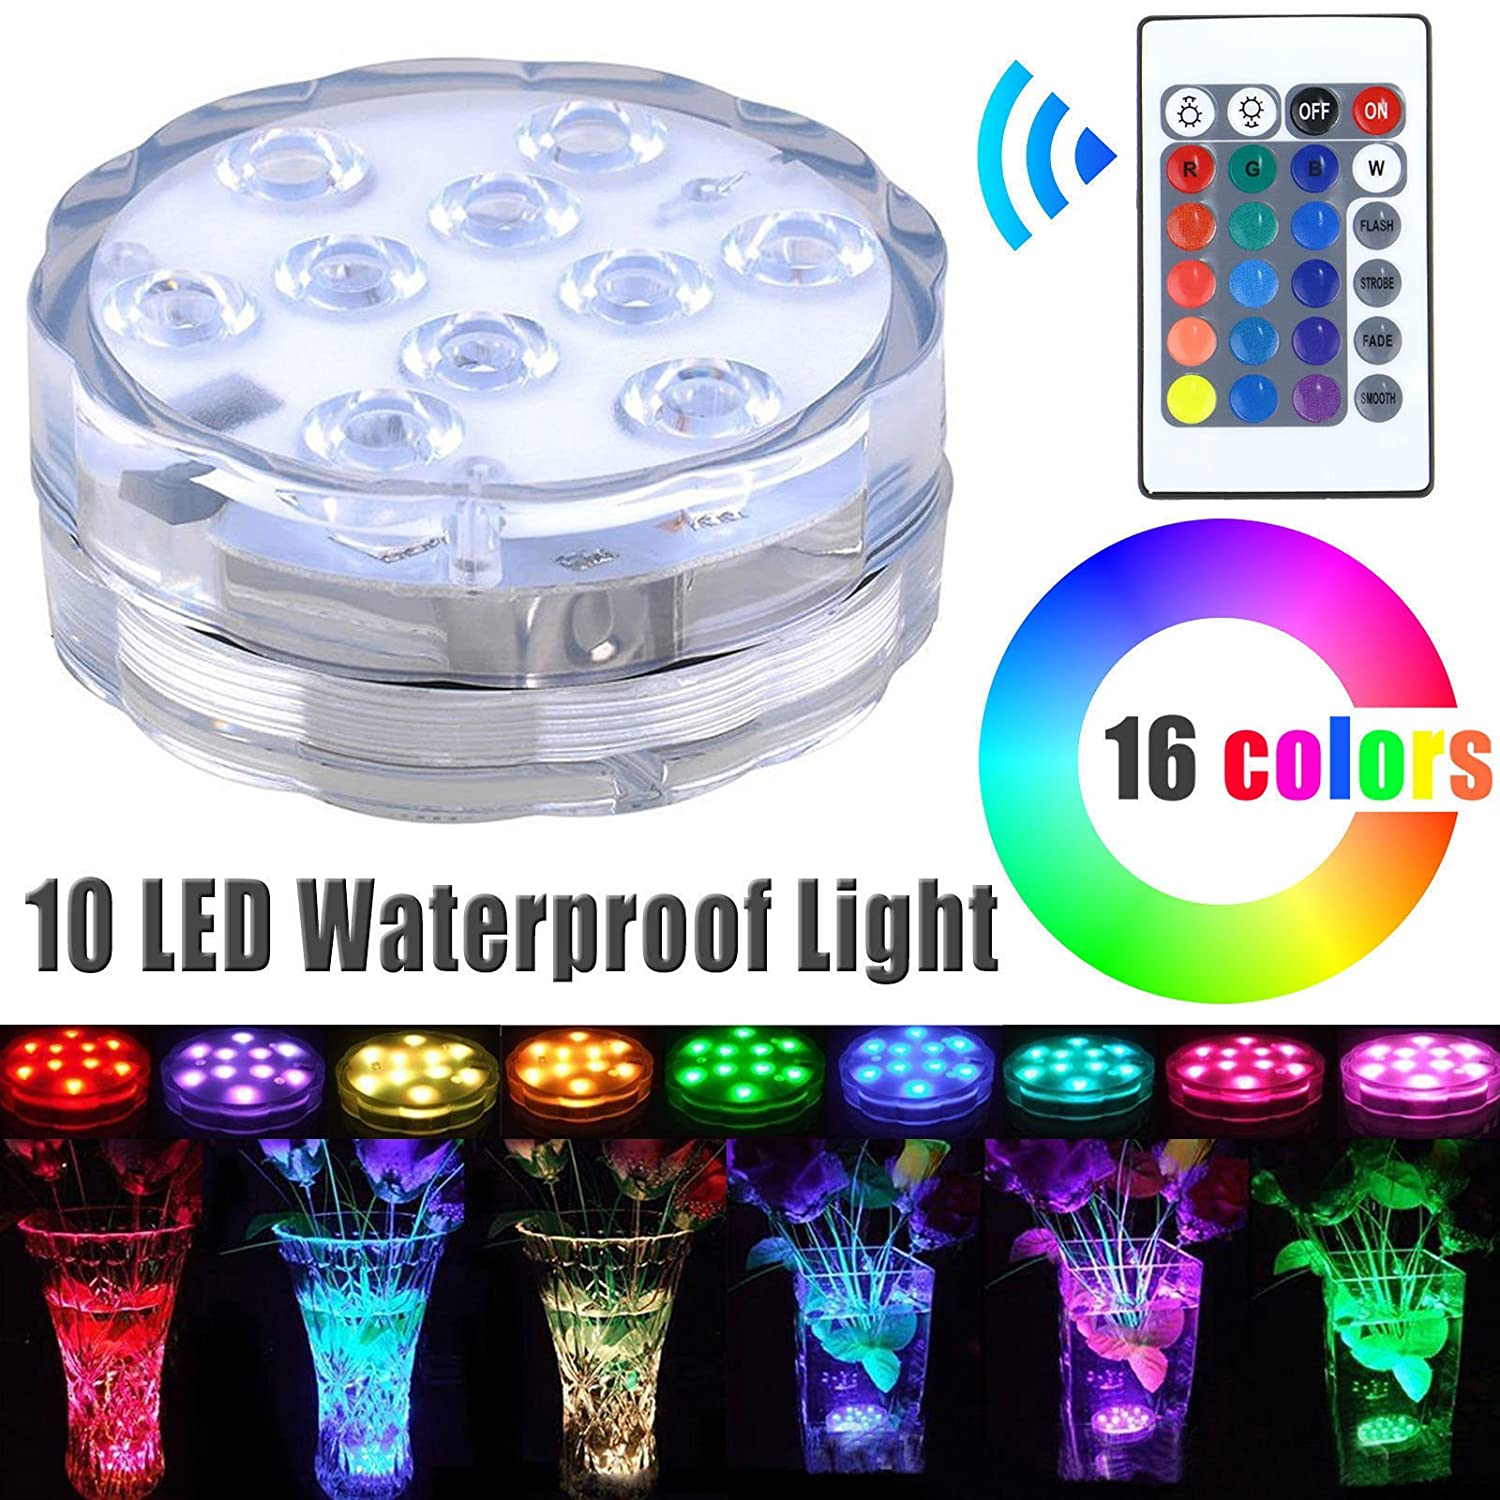 Szyoumy Submersible 10LED RGB Waterproof Light for Vase Wedding Party Fish Tank Decors 418296298